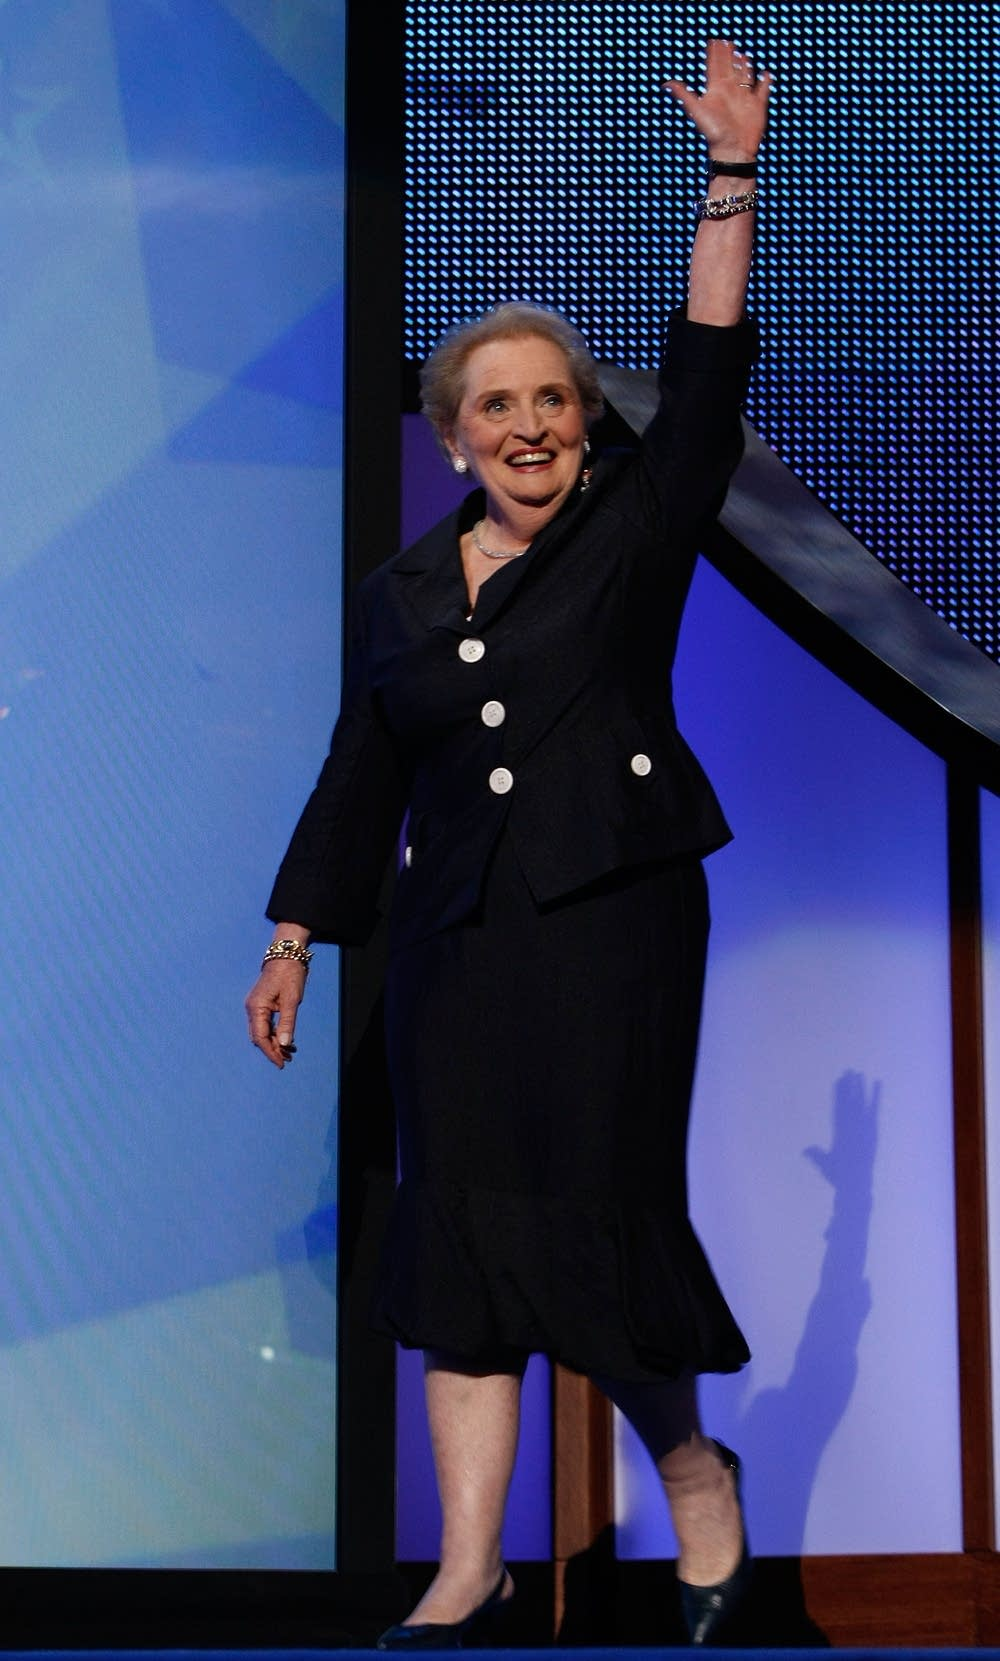 Medeleine Albright walks on stage during the DNC